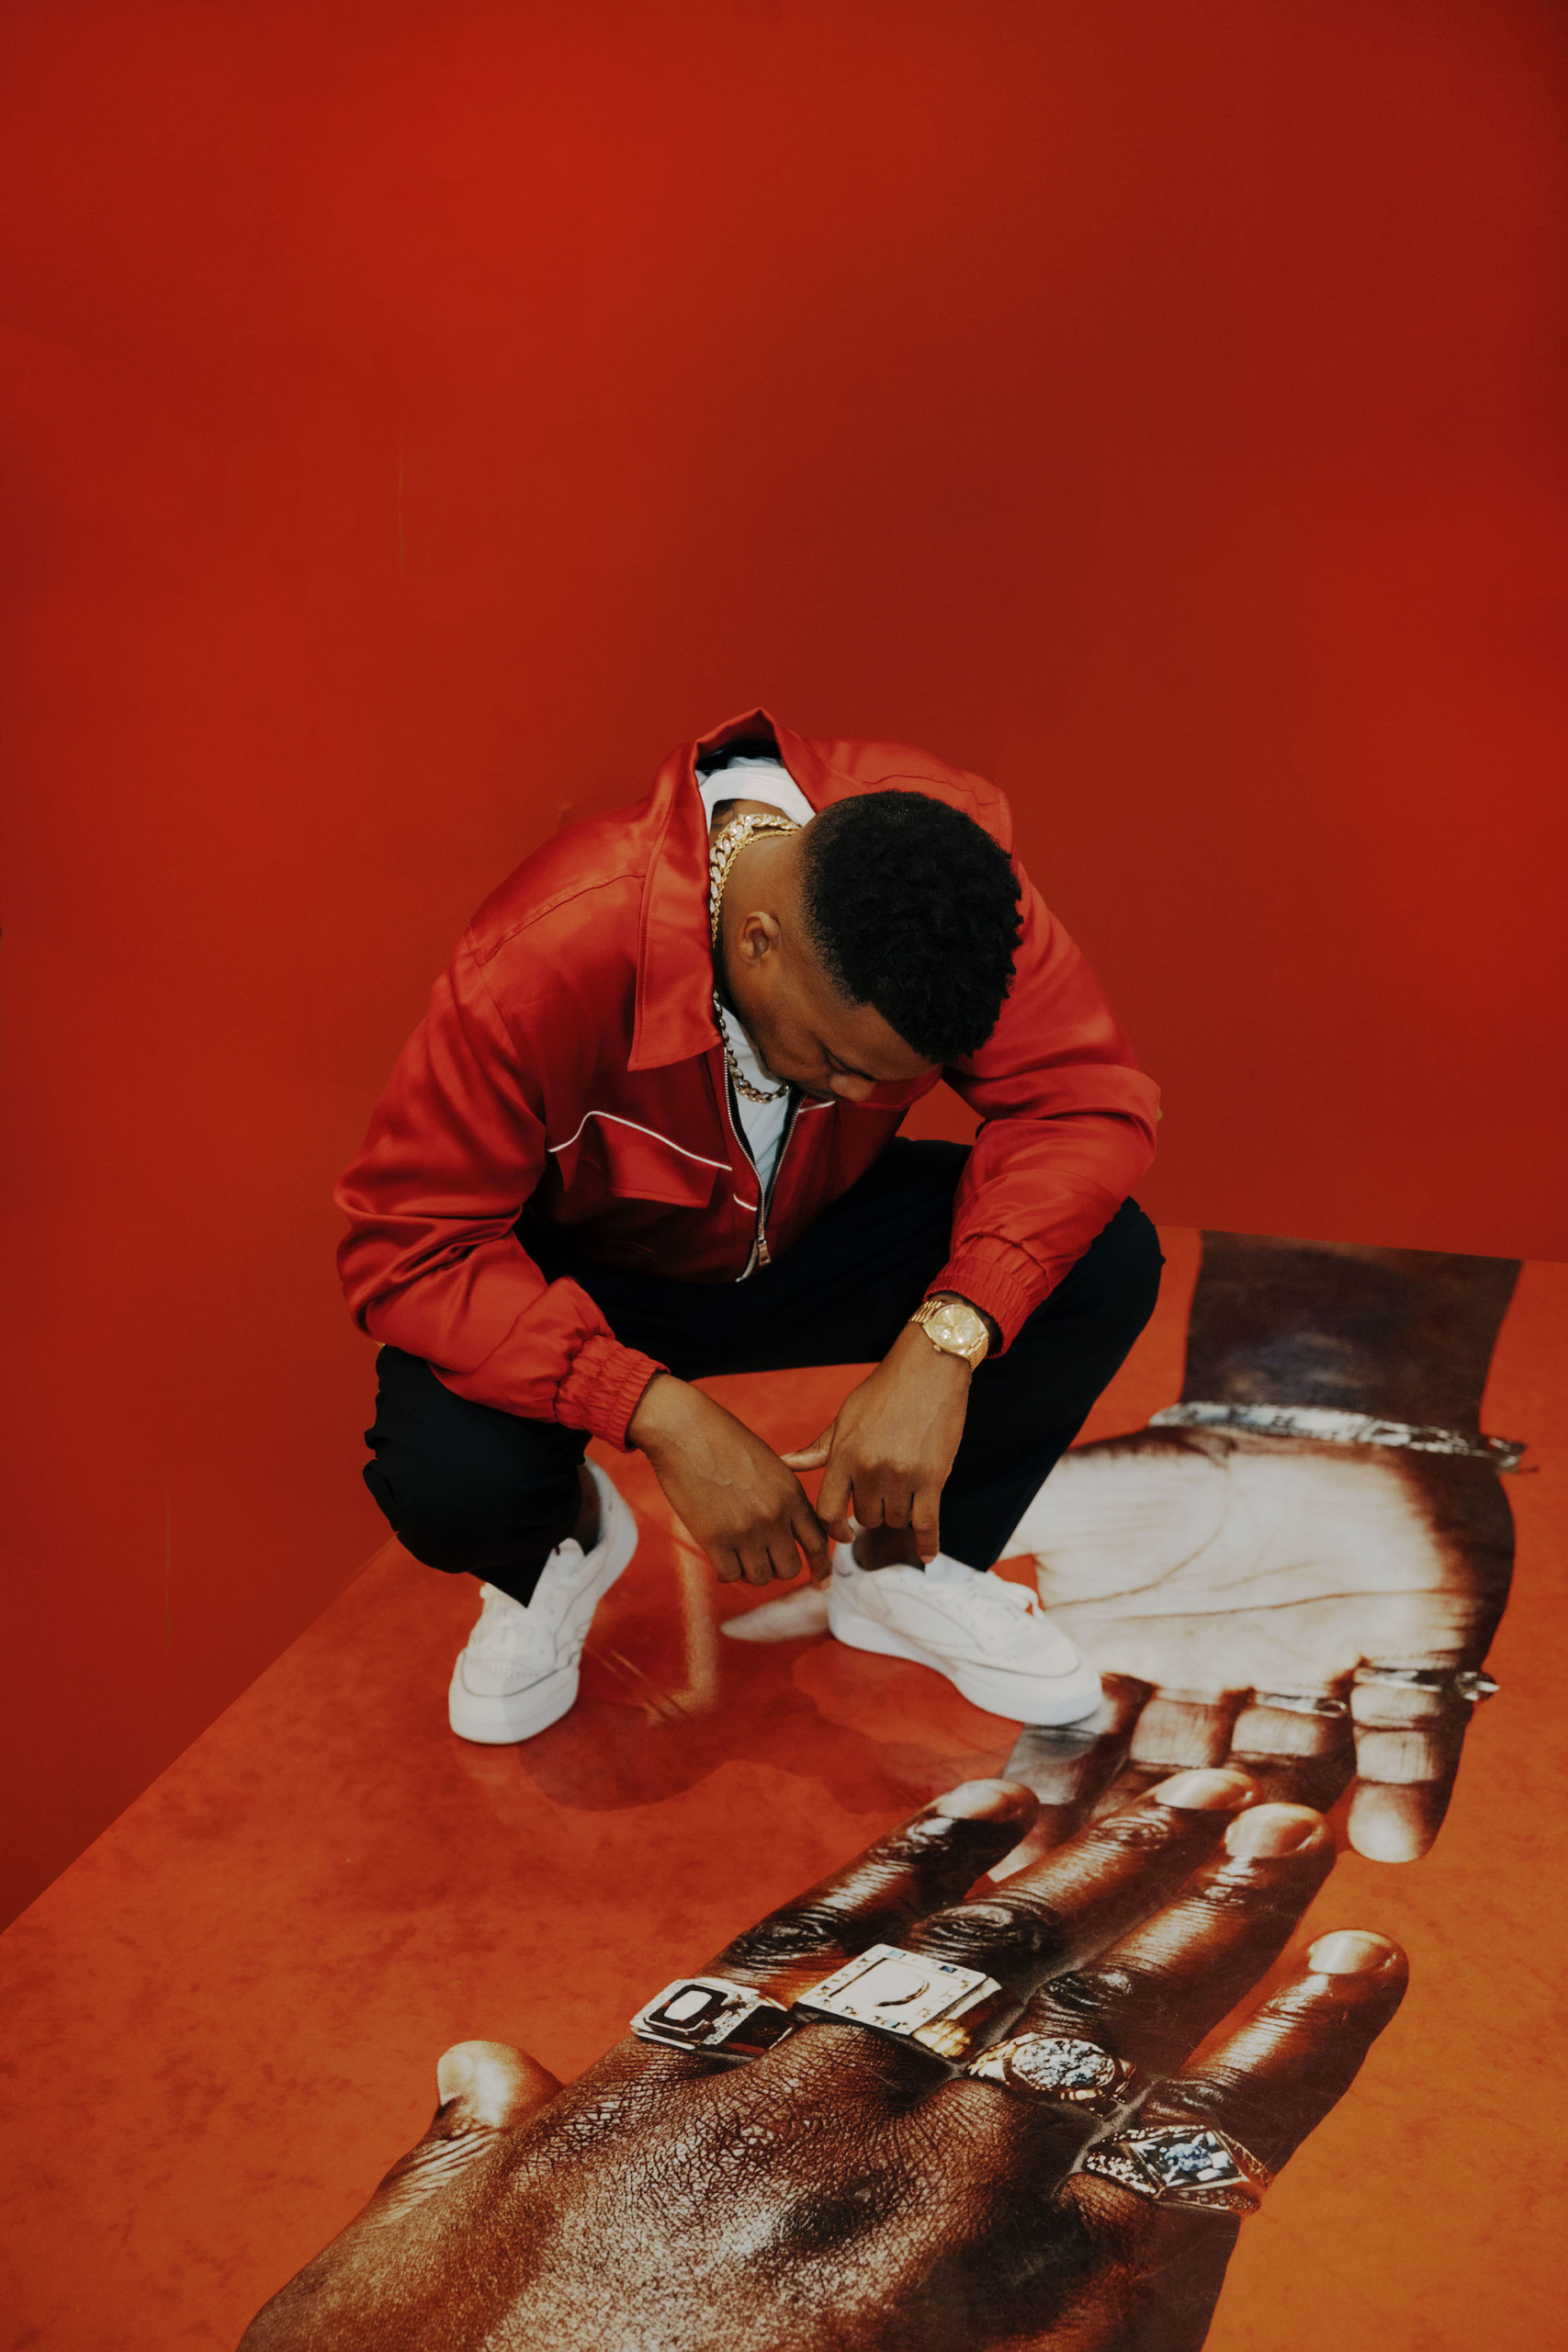 Man in red leather jacket against red wall squatting and looking at art of a hand on floor